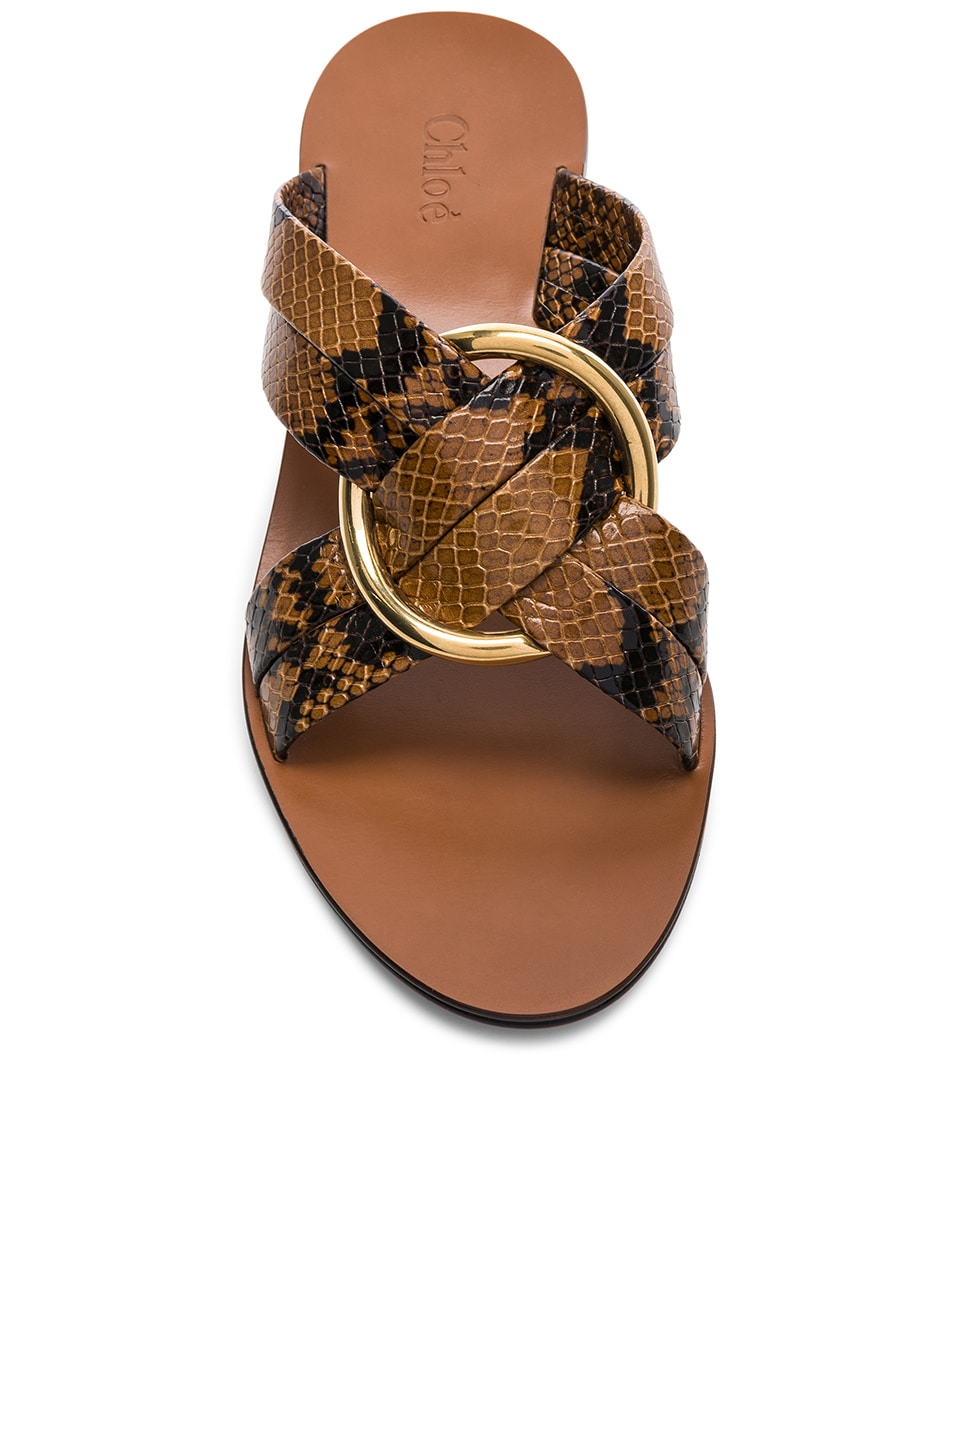 Image 4 of Chloe Rony Python Print Leather Cross Strap Mules in Light Tan